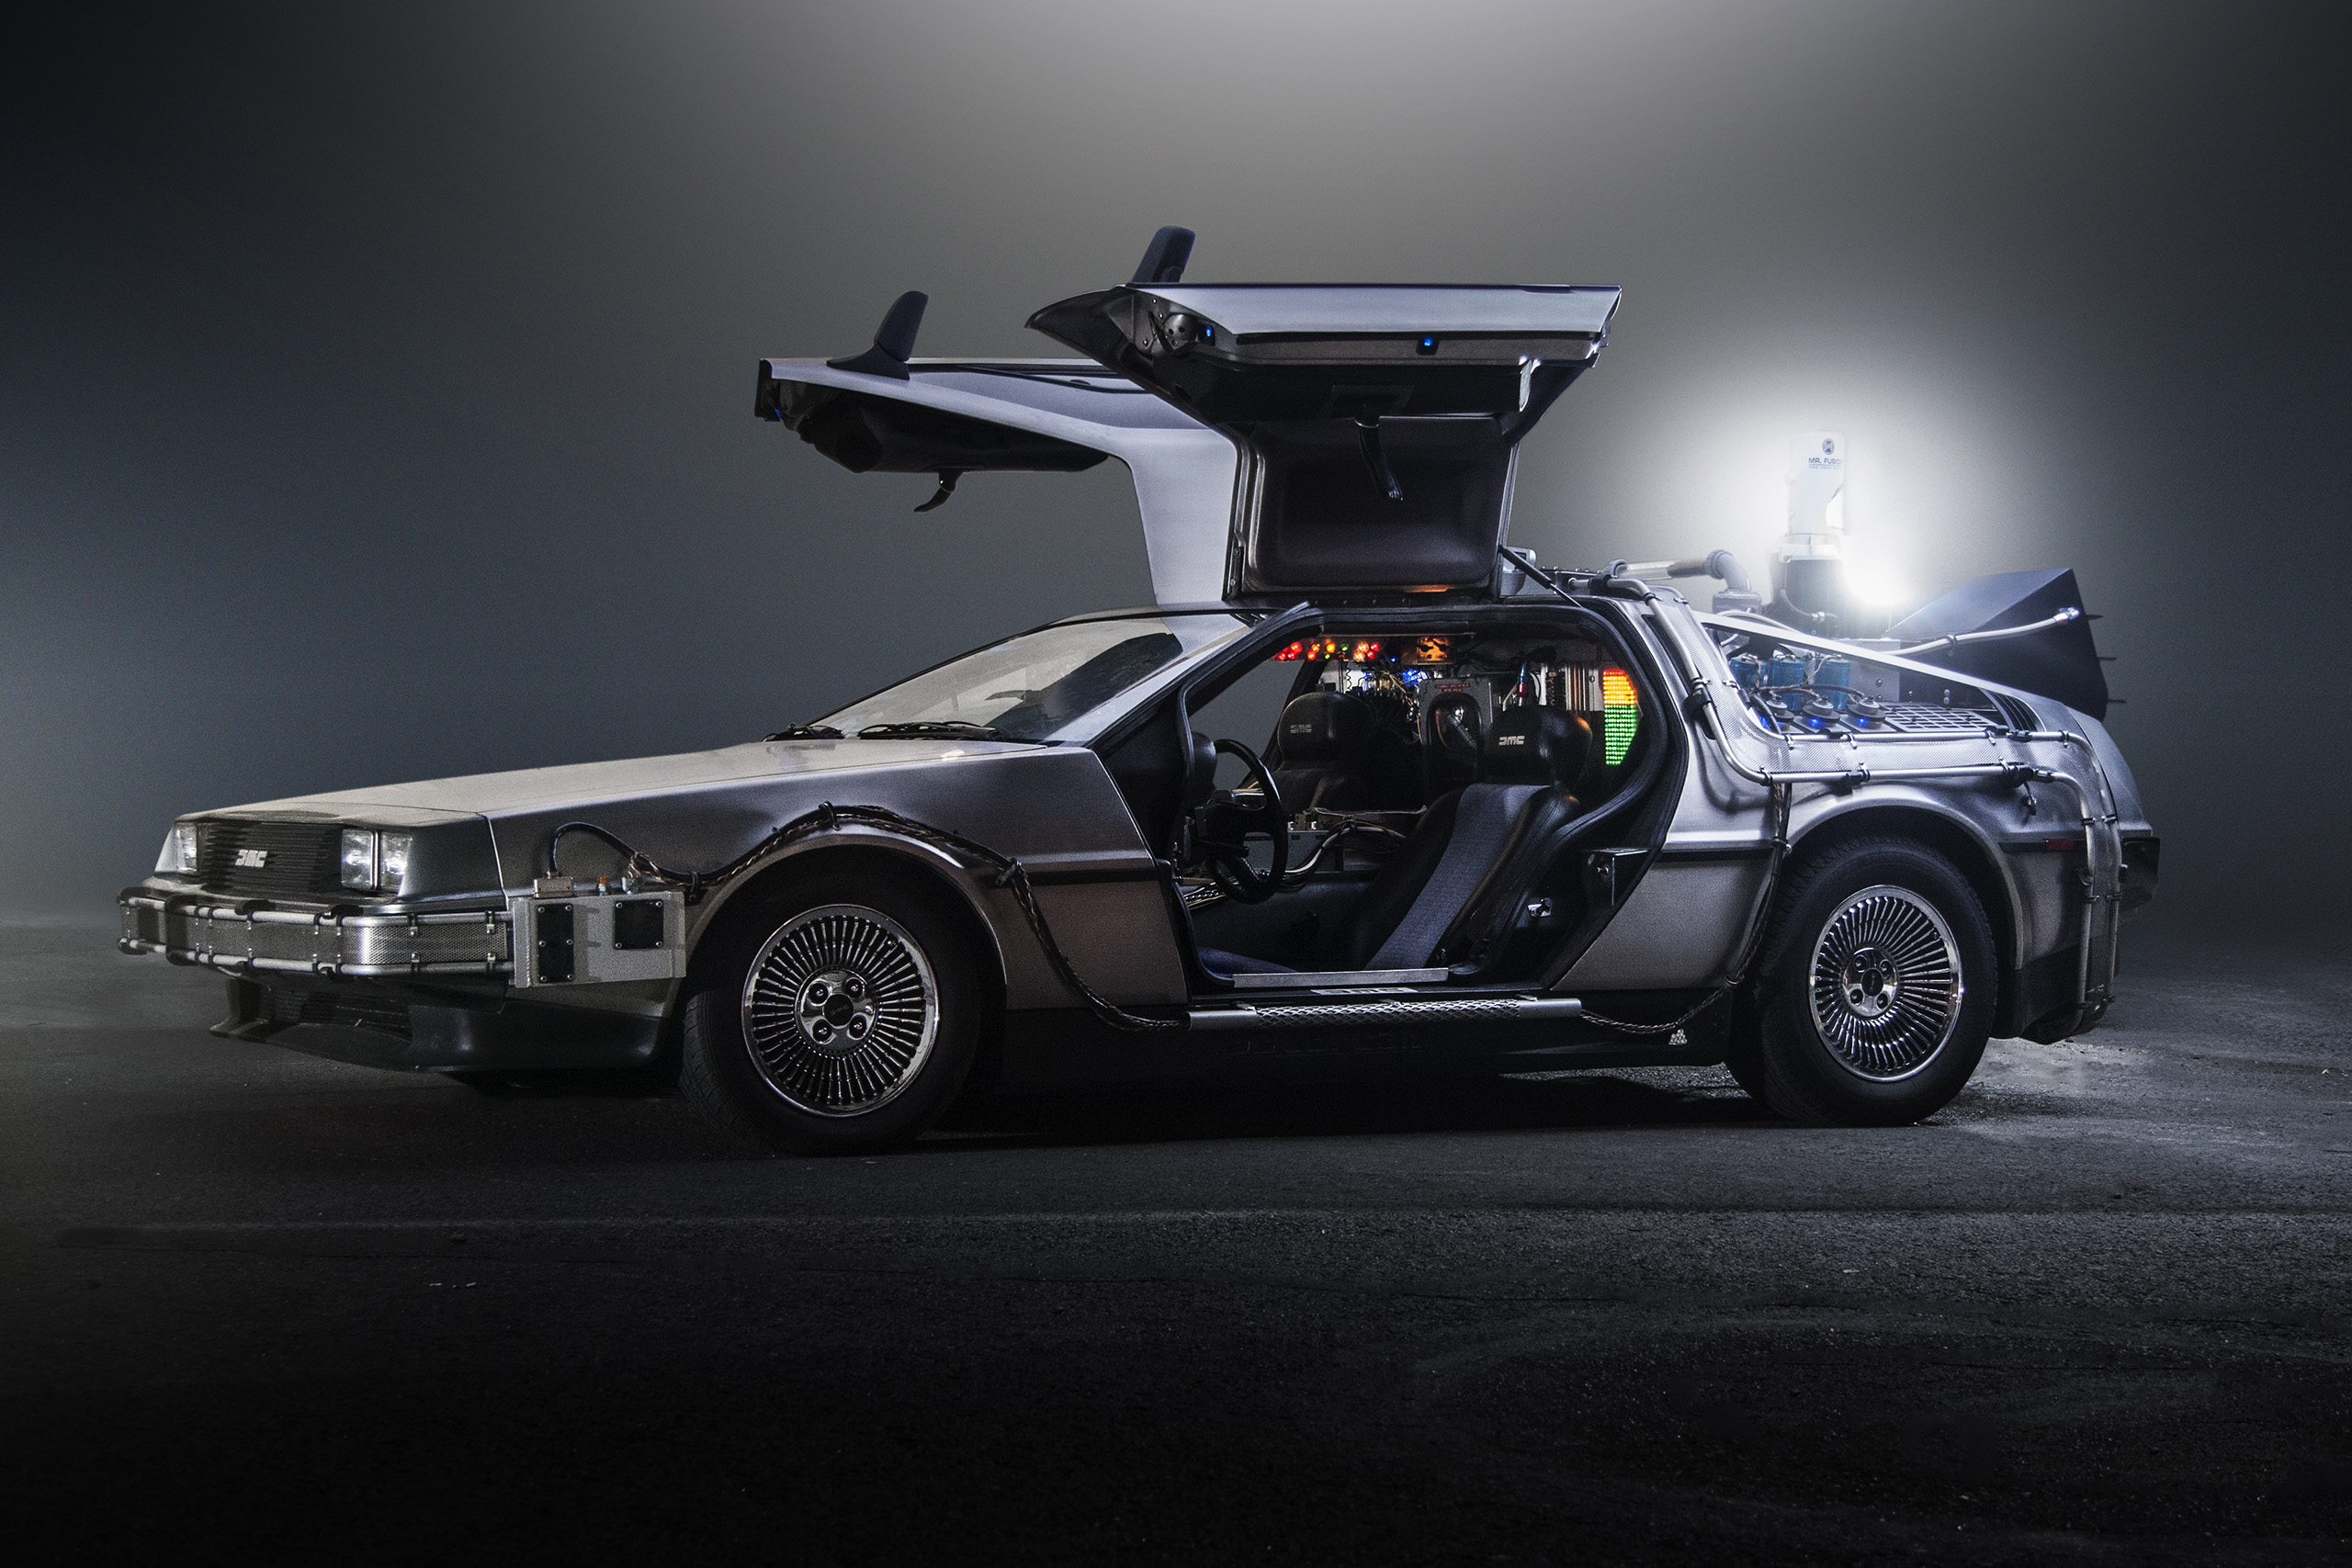 TeamTimeCar.com BTTF DeLorean Time Machine OtoGodfrey.com JMortonPhoto.com 07 - What if the Oppressor, Deluxo, Scramjet, Vigilante, Ruiner, etc. didn't have missiles?